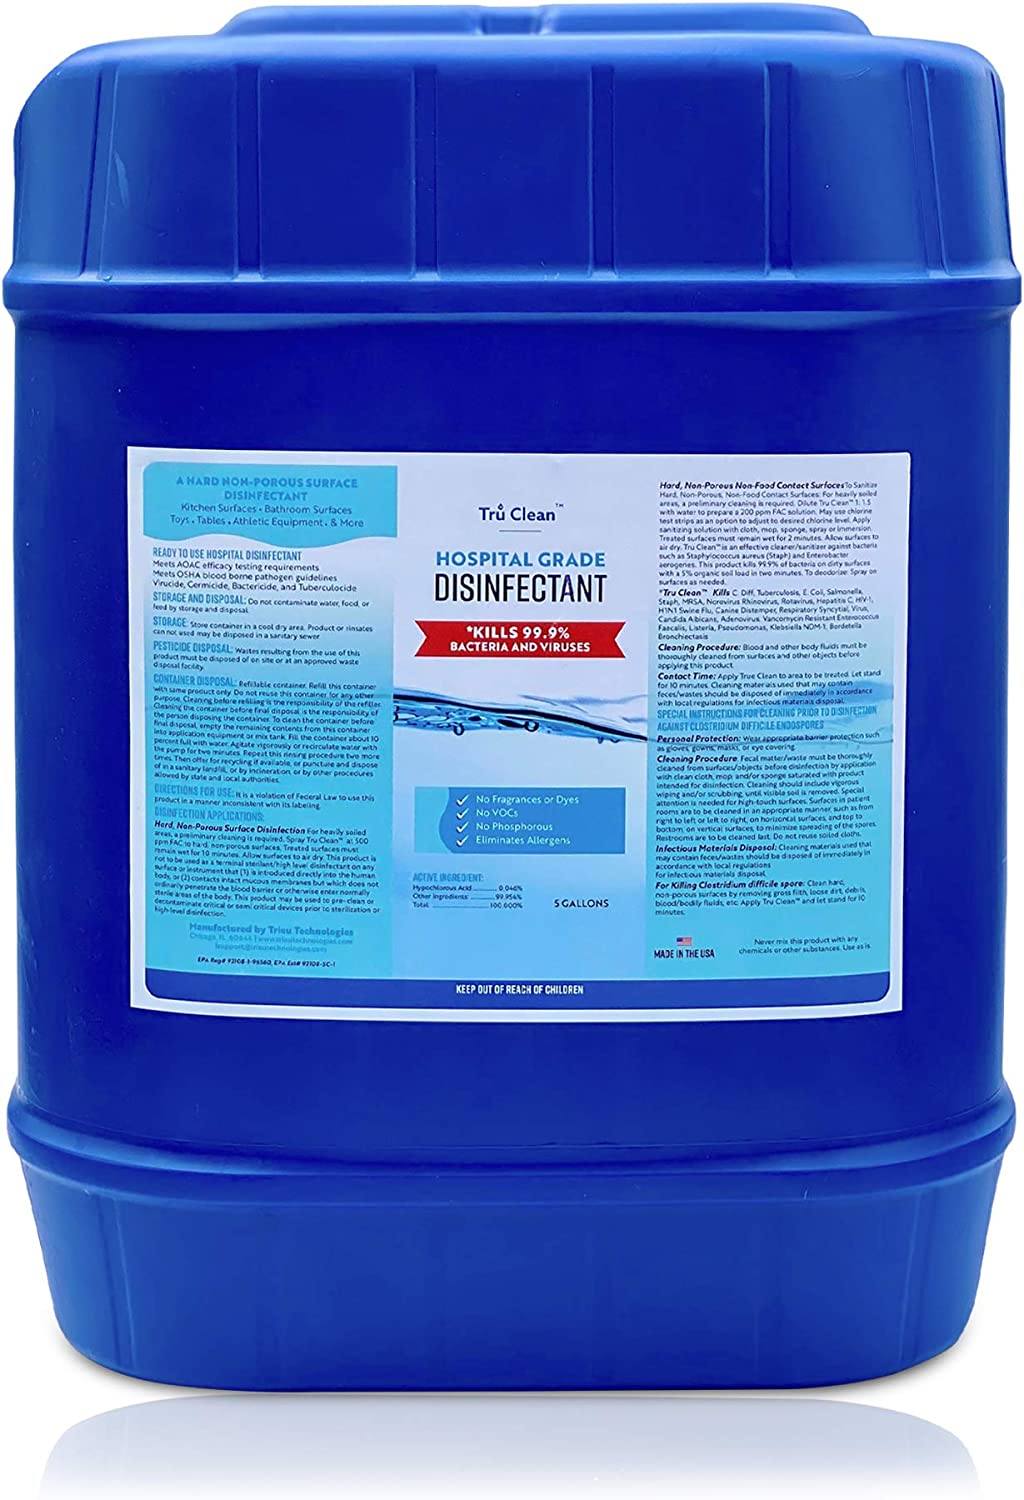 New Five Gallon Tru Clean Grade Hospital Free shipping Very popular! anywhere in the nation registered EPA Disinfec